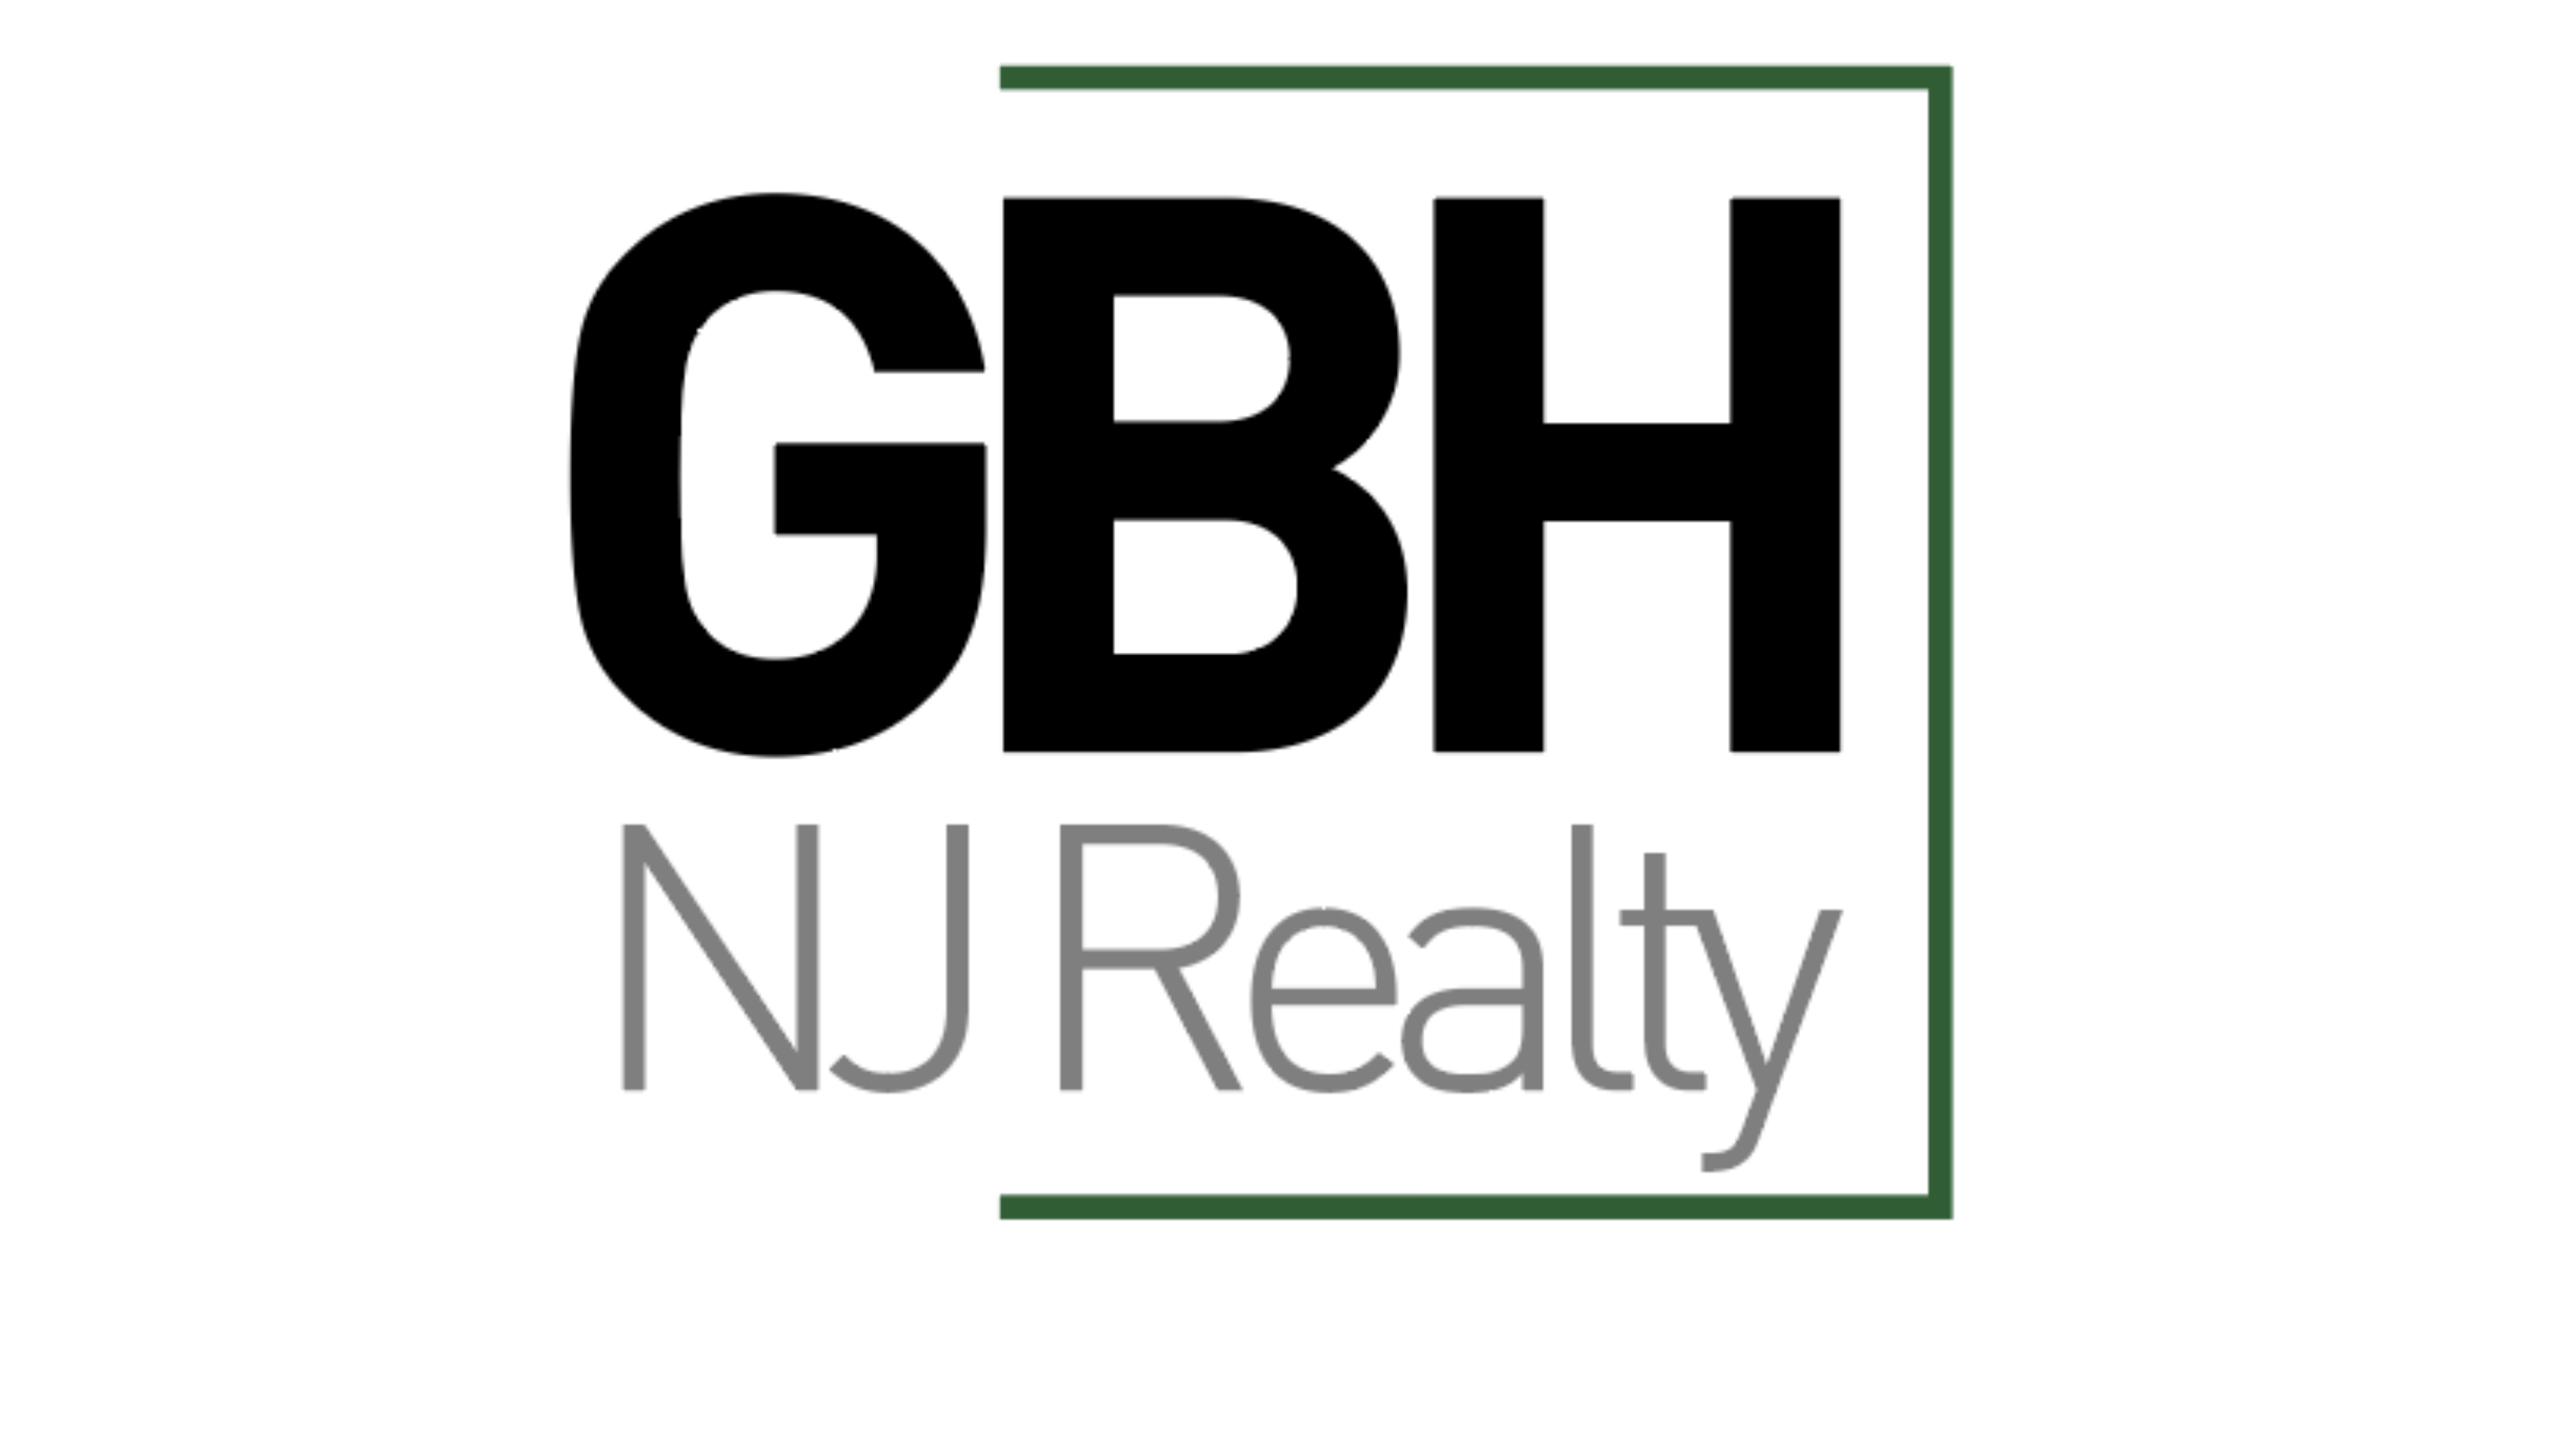 Welcome to GoodBuy Homes NJ Realty